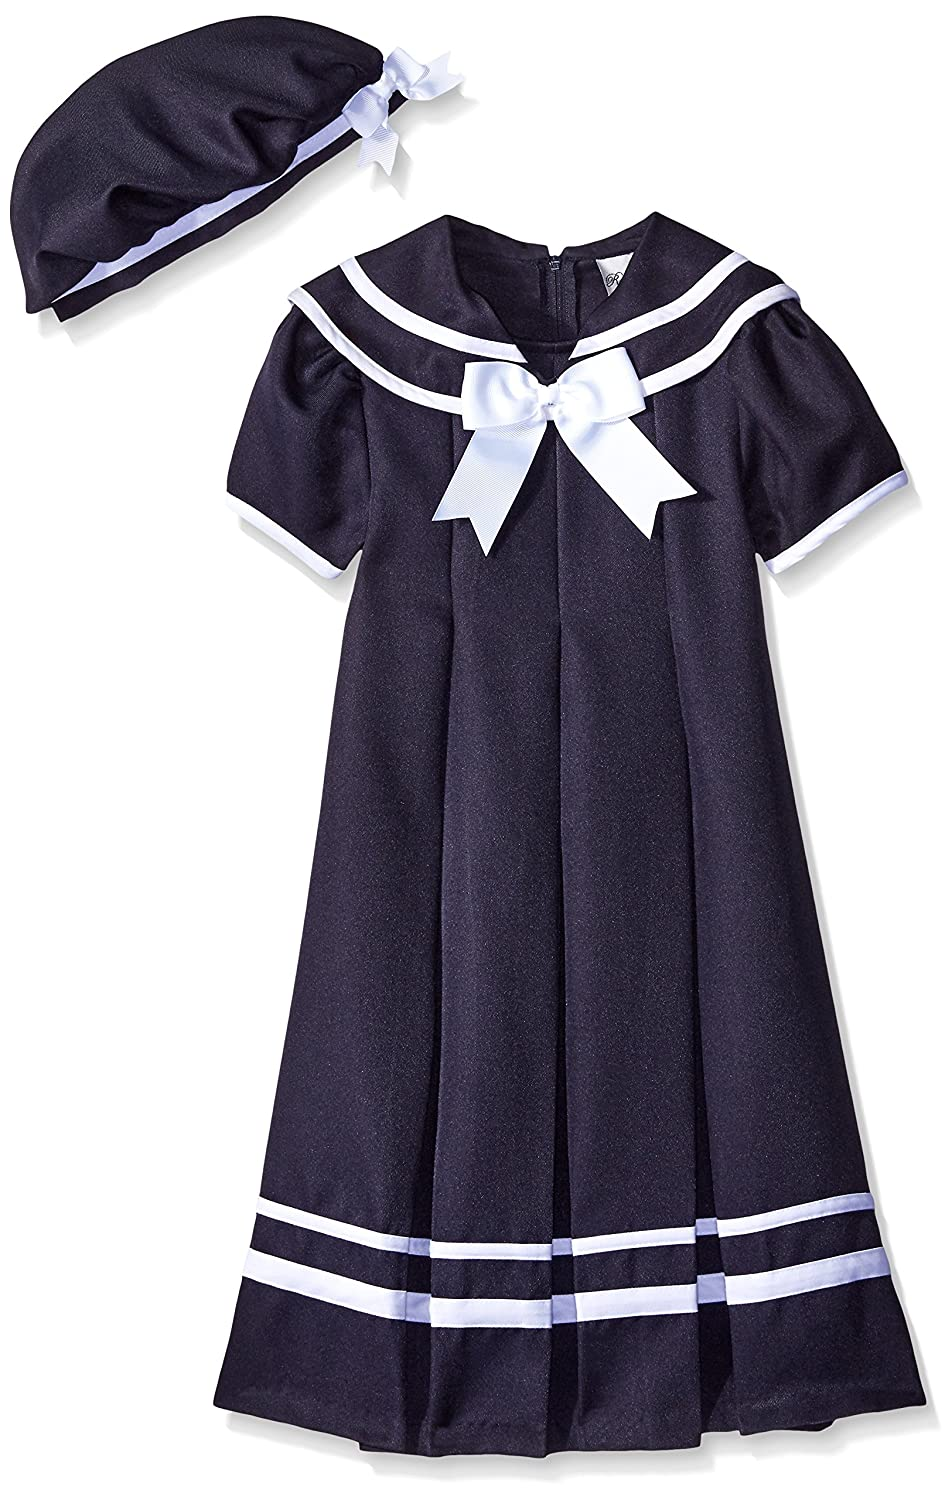 Vintage Style Children's Clothing: Girls, Boys, Baby, Toddler Rare Editions Big Girls Navy Nautical Dress $29.99 AT vintagedancer.com